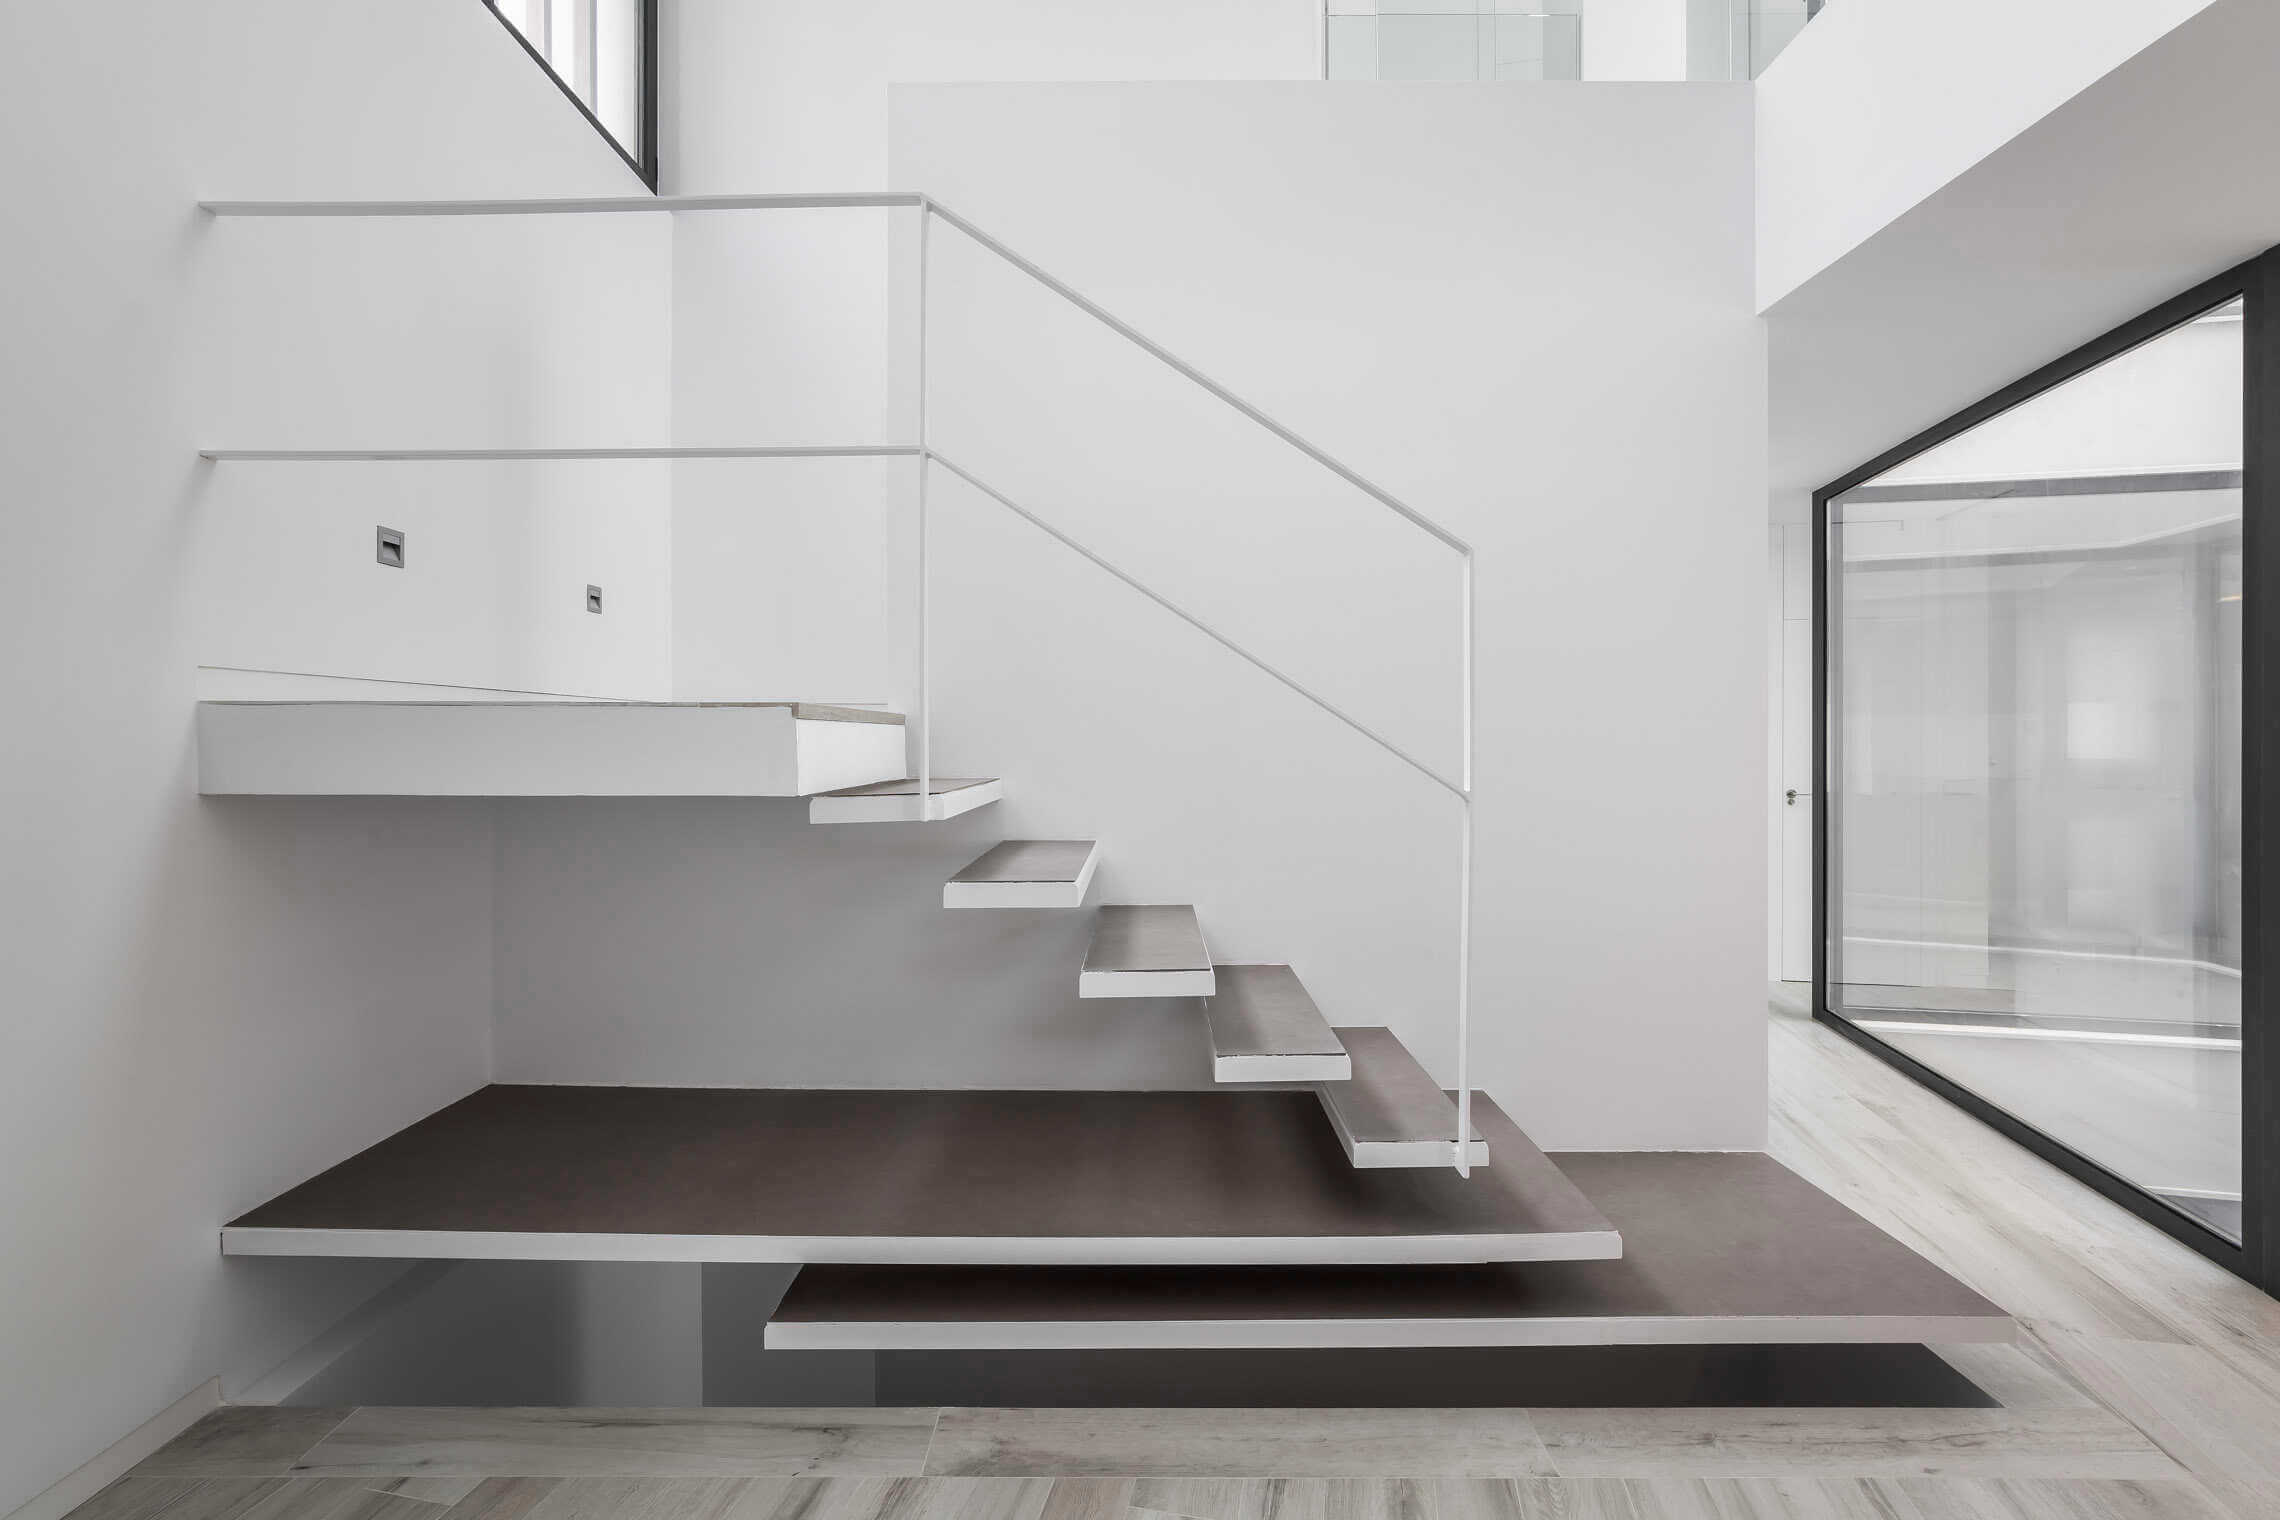 Laminate porcelain tile for steps of a staircase